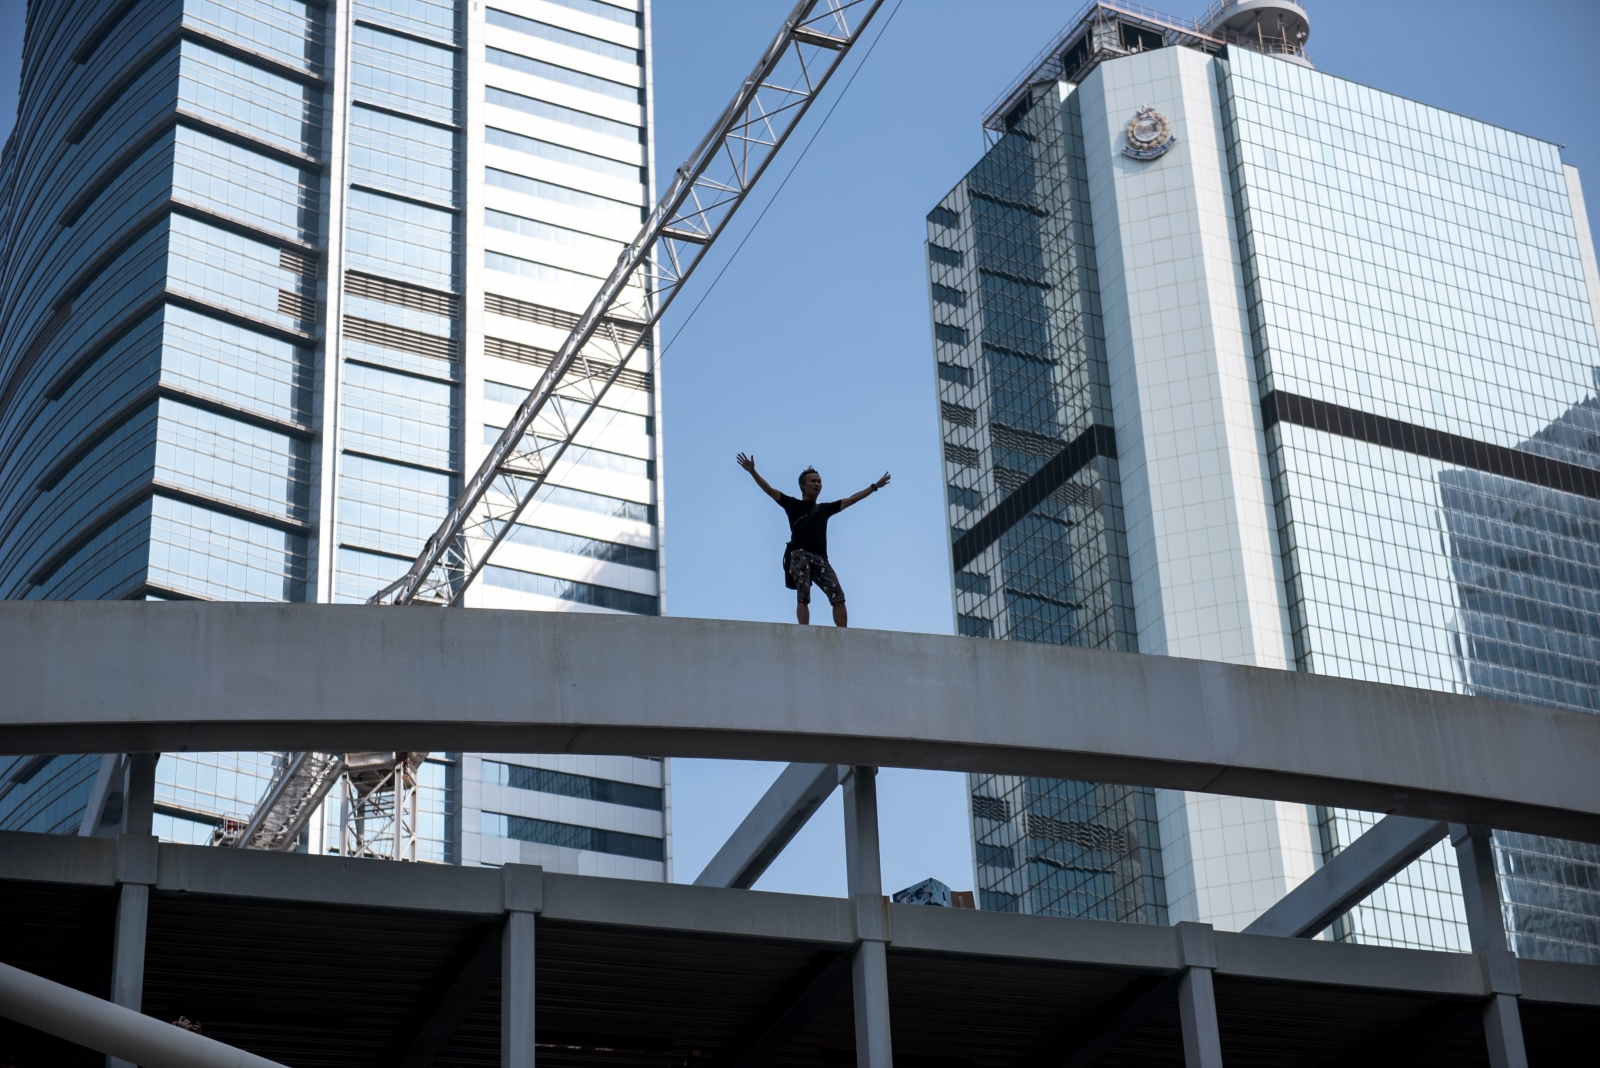 A man standing on top of a bridge overlooking a pro-democracy protest area threatens to jump